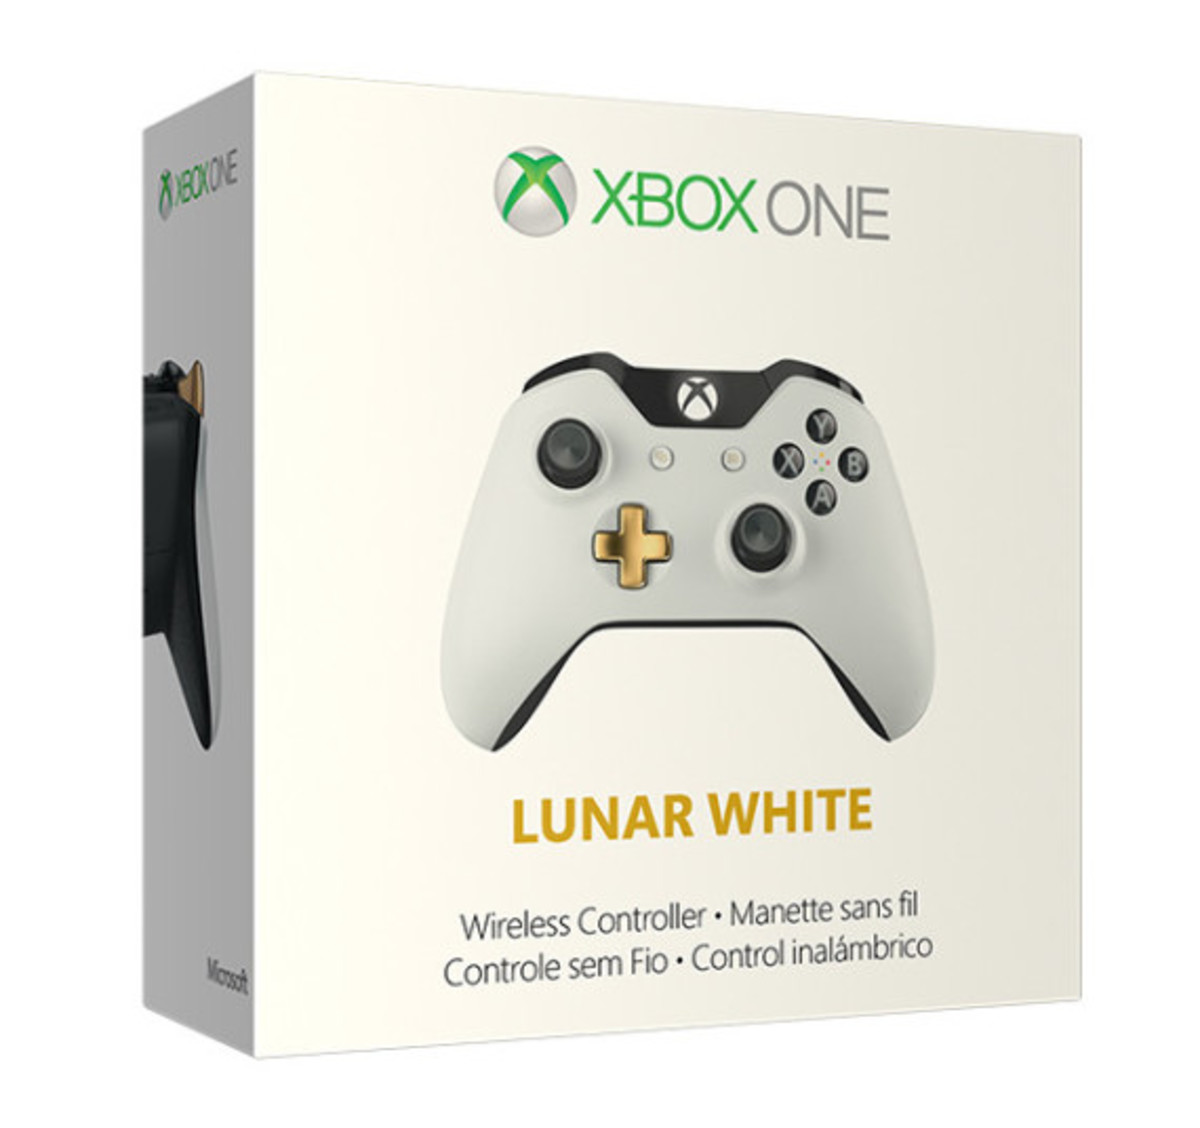 xbox-one-lunar-white-wireless-controller-03